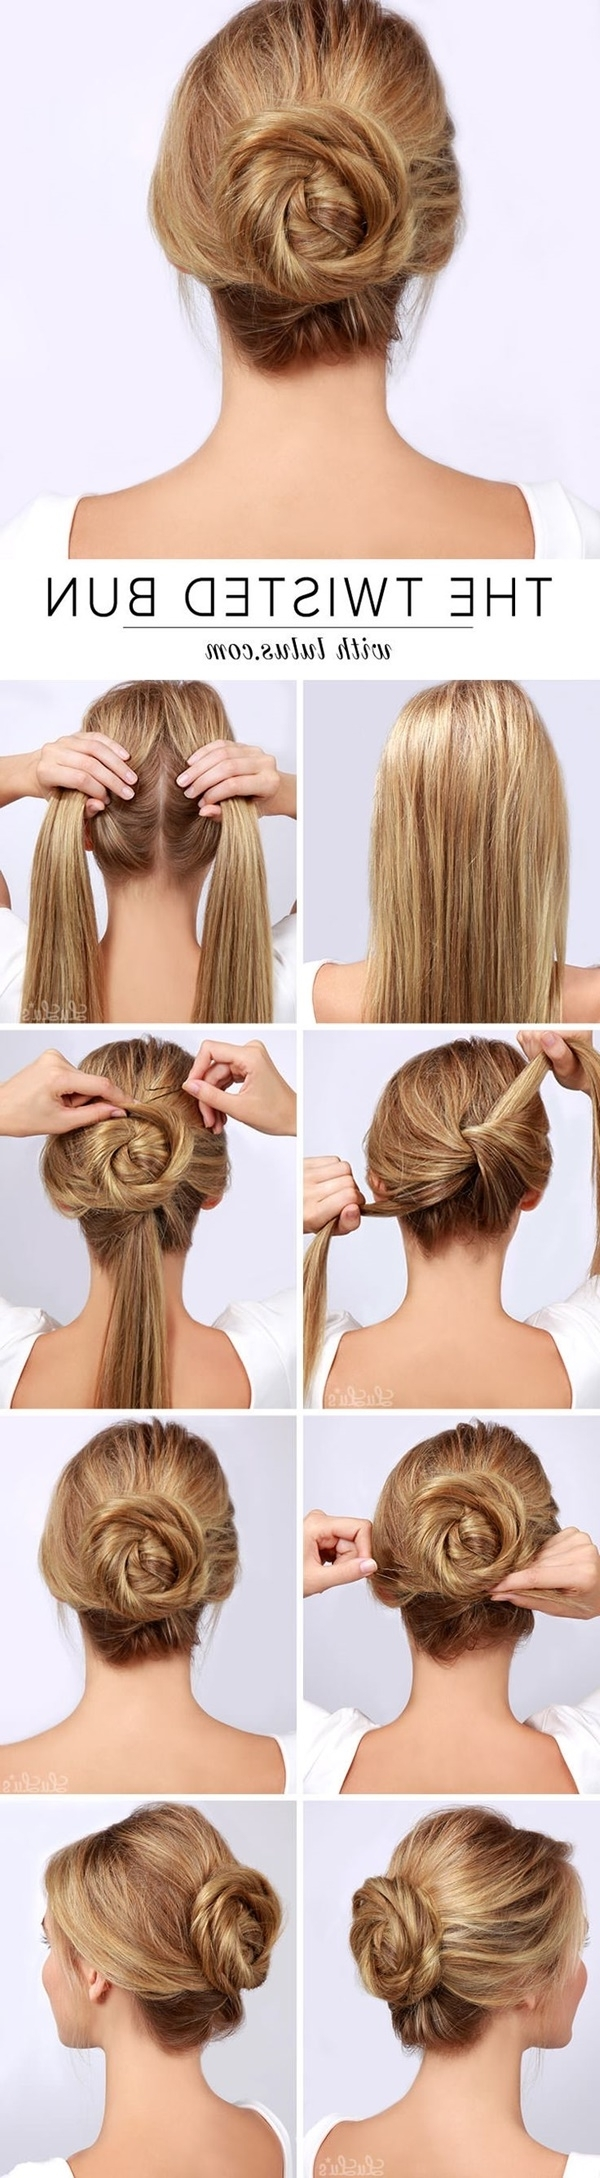 101 Cute & Easy Bun Hairstyles For Long Hair And Medium Hair Inside Easy Updo Hairstyles For Medium Hair (View 2 of 15)